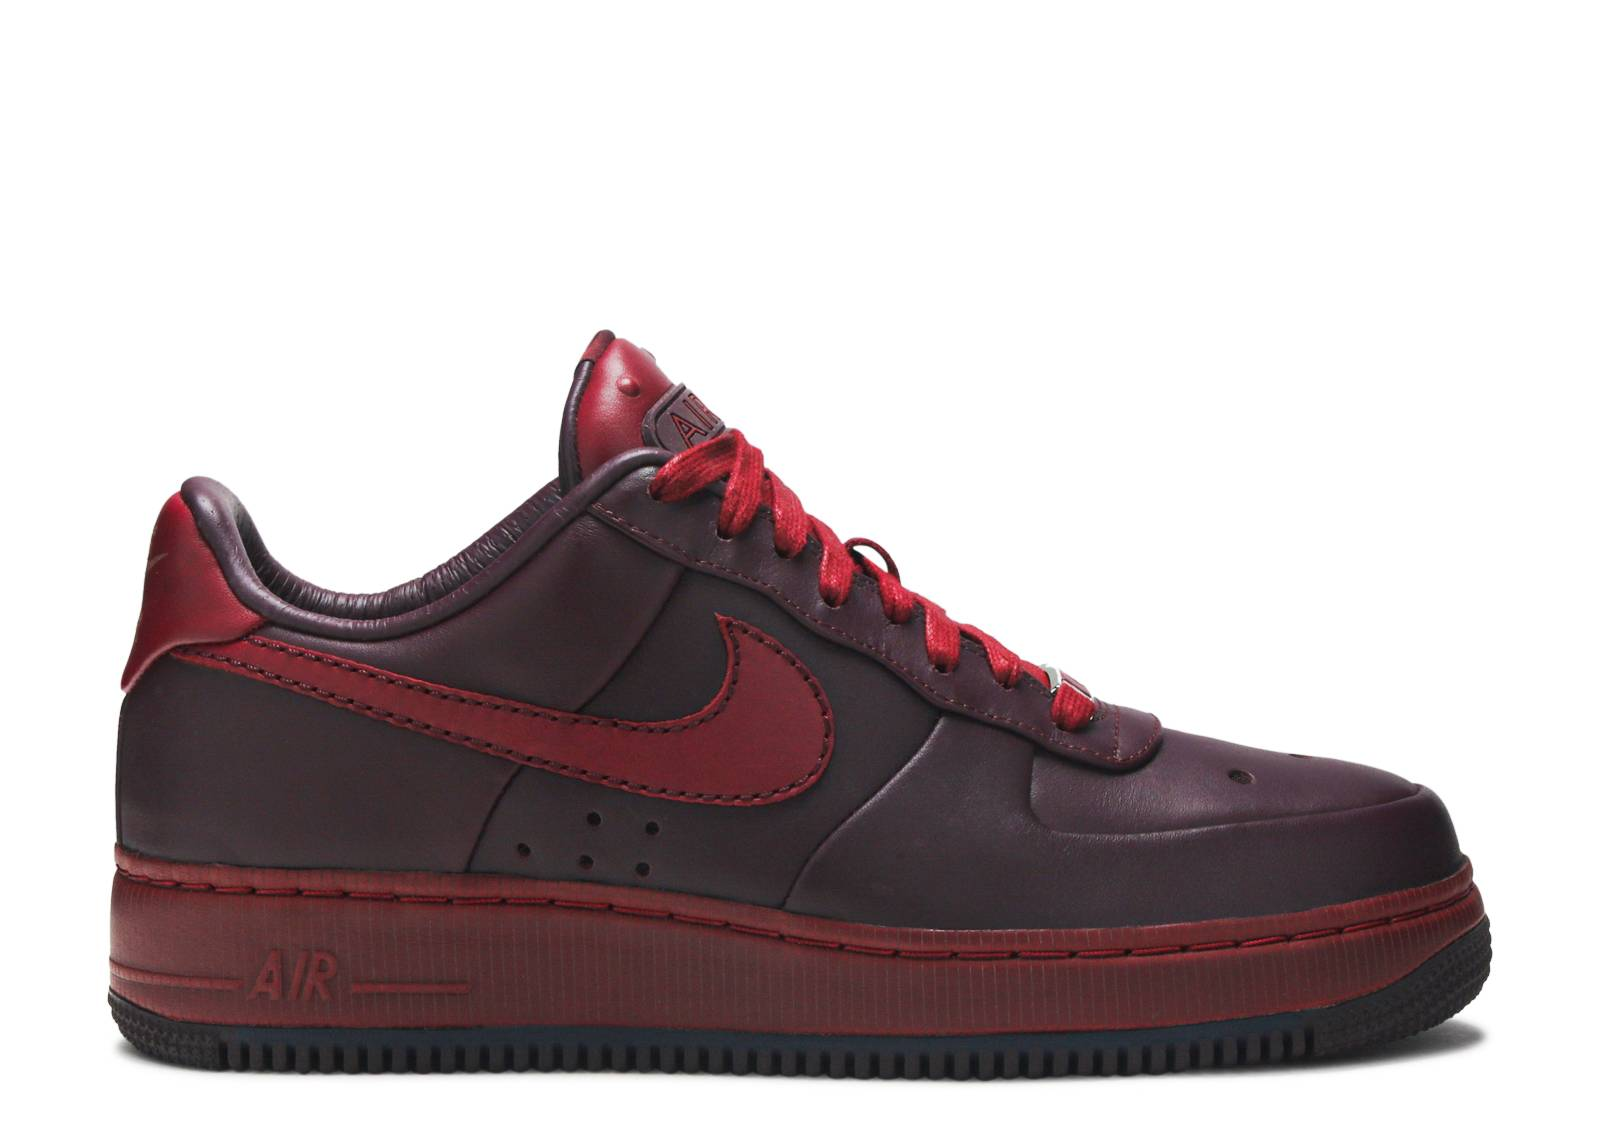 ... air force 1 low supreme mco cb charles barkley. nike ...